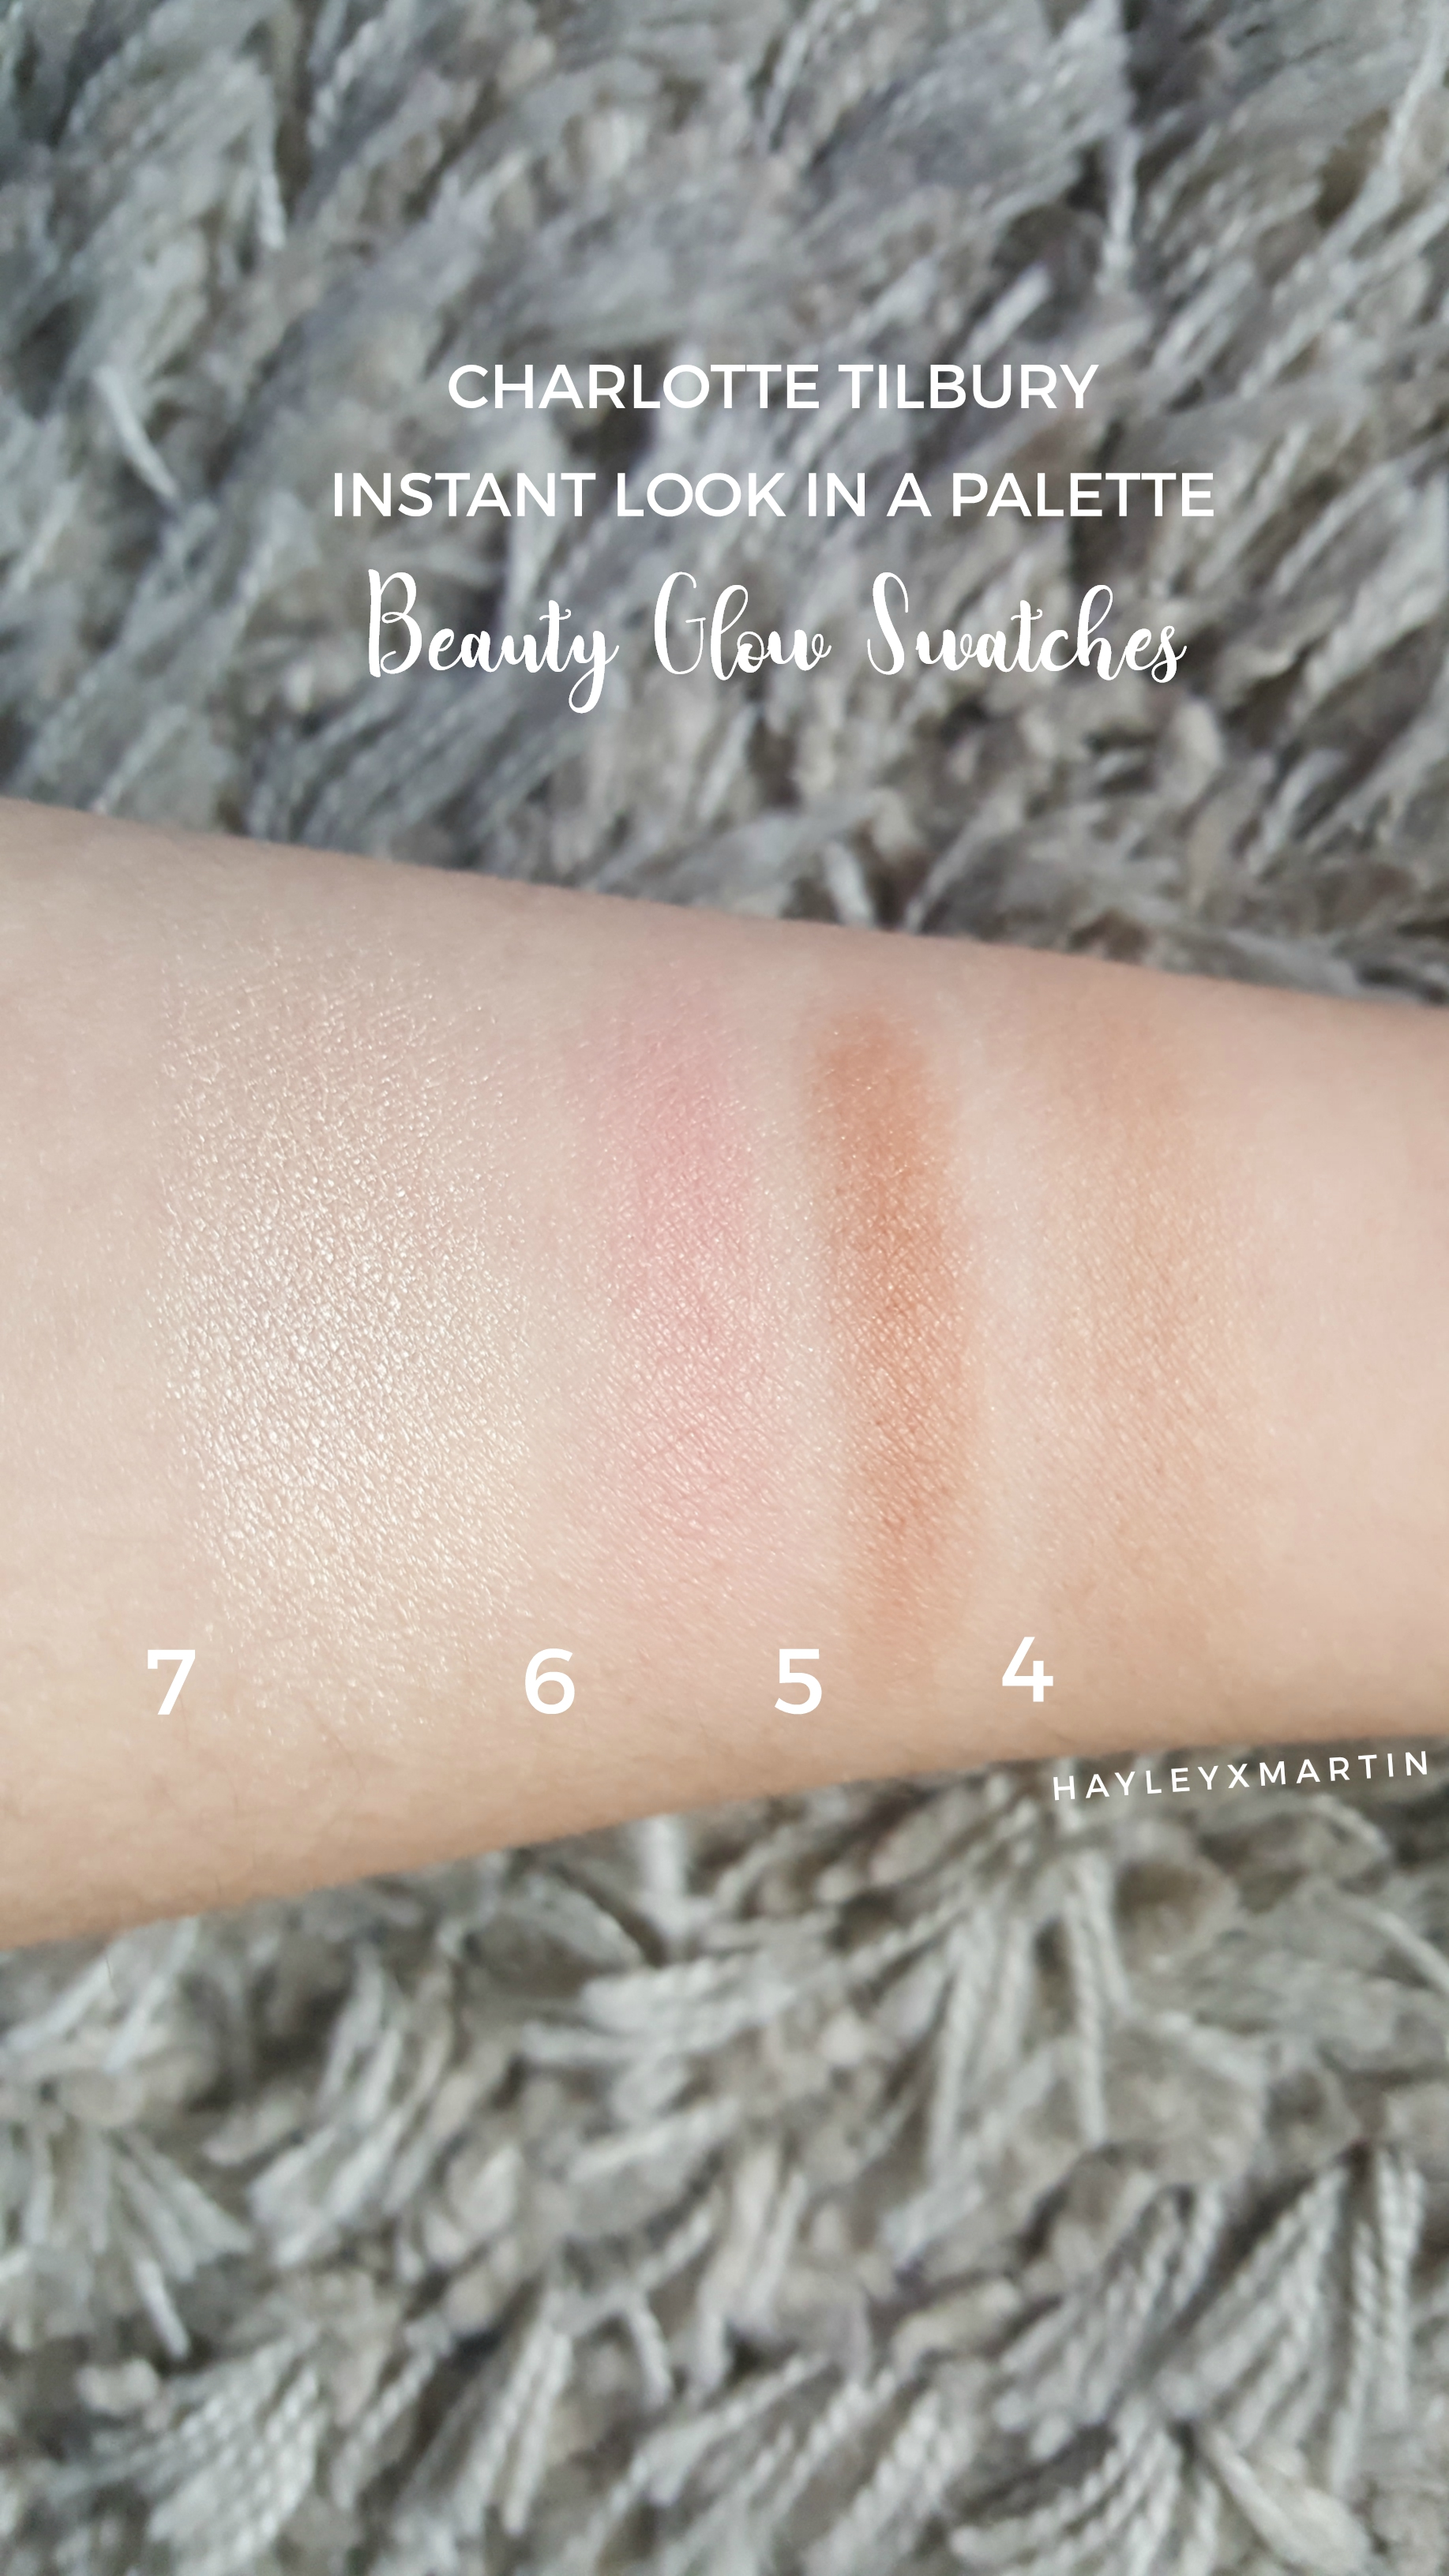 charlotte tilbury beauty glow swatches